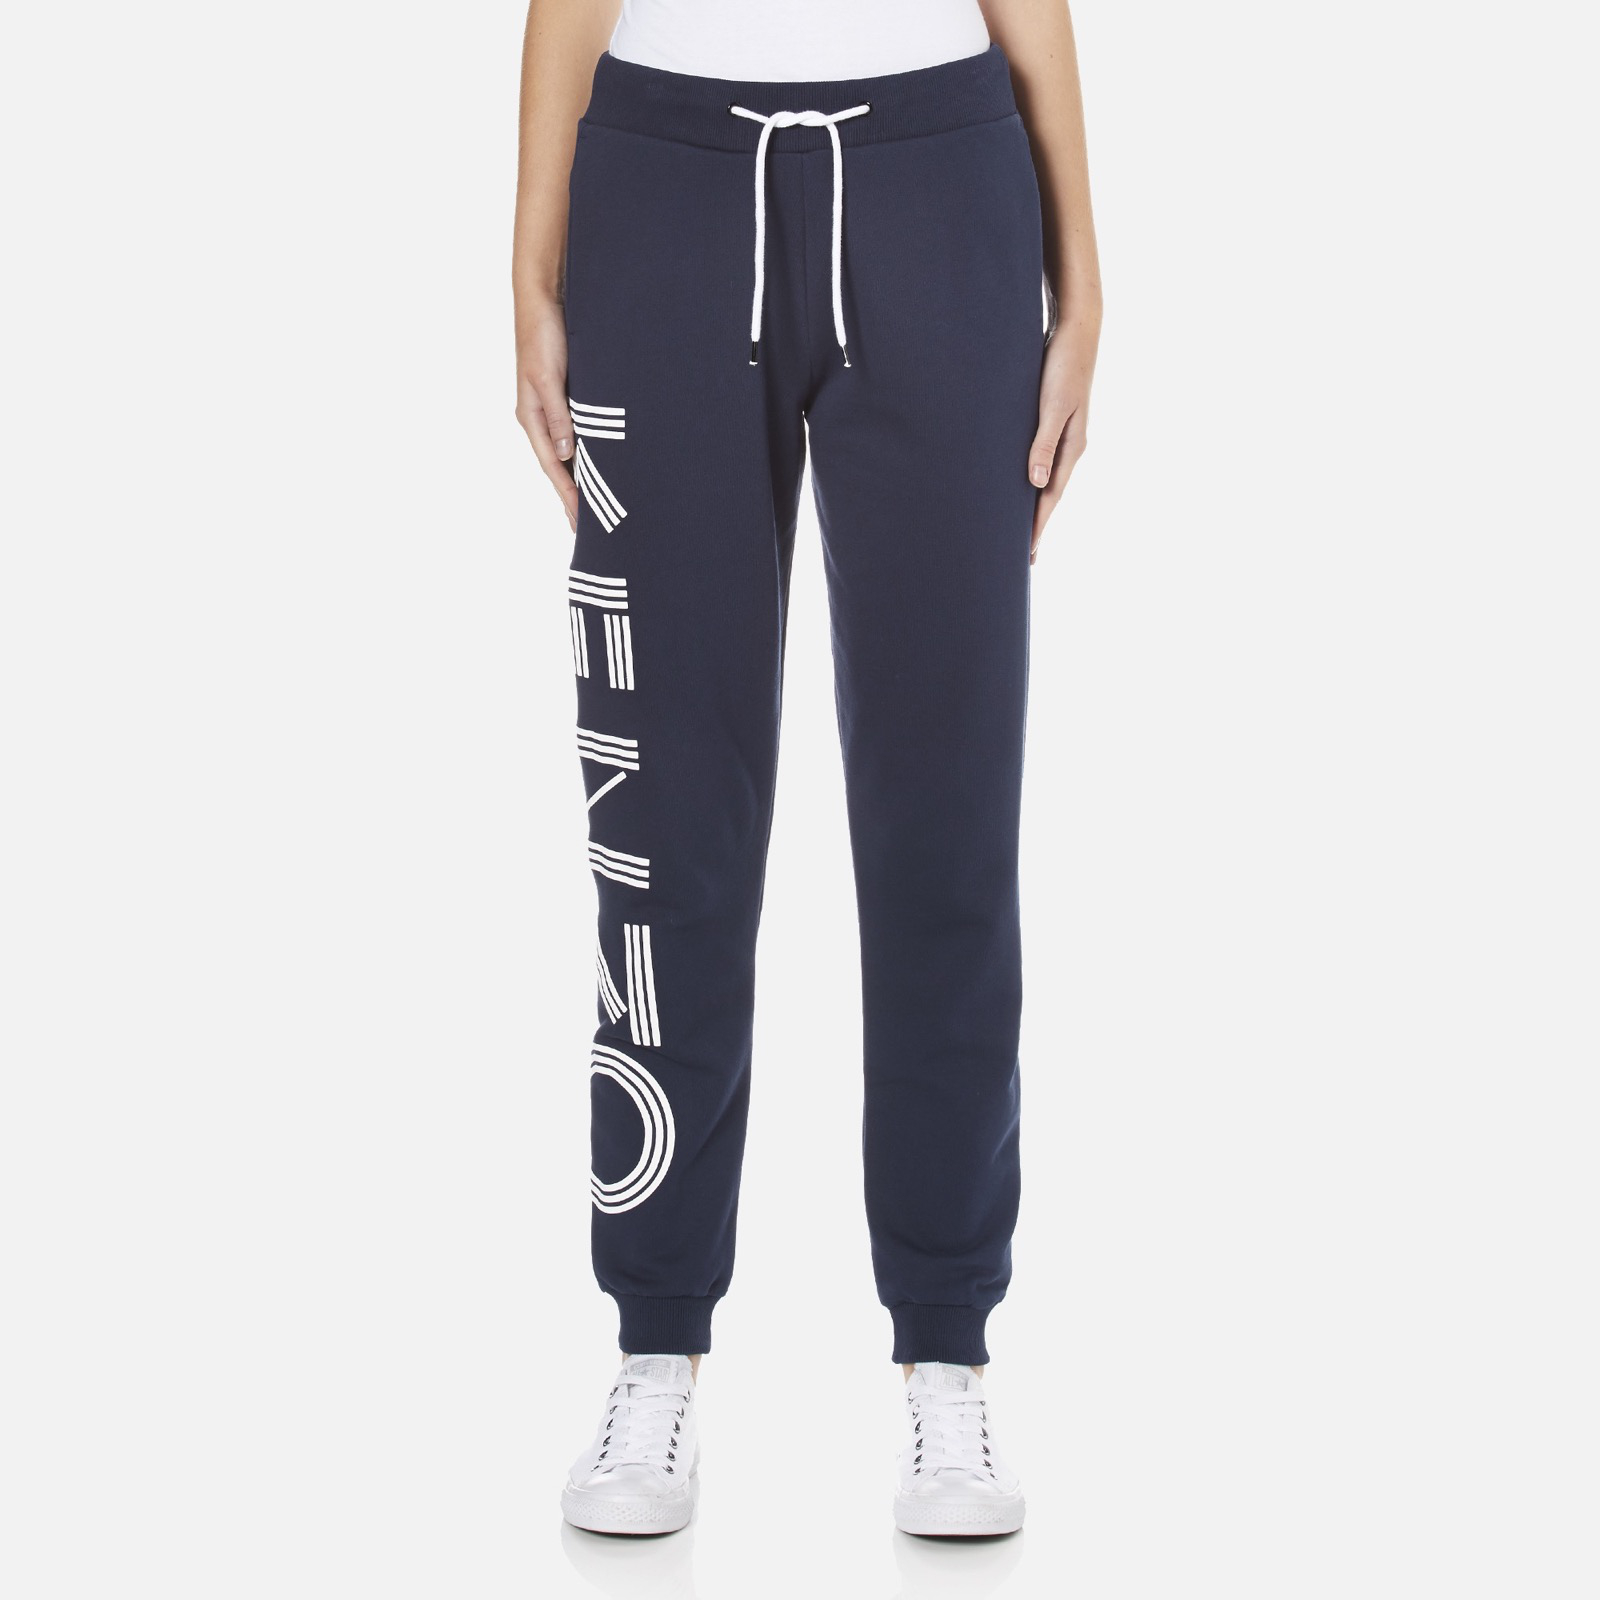 f847afd6 KENZO Women's Side Logo Joggers - Ink - Free UK Delivery over £50